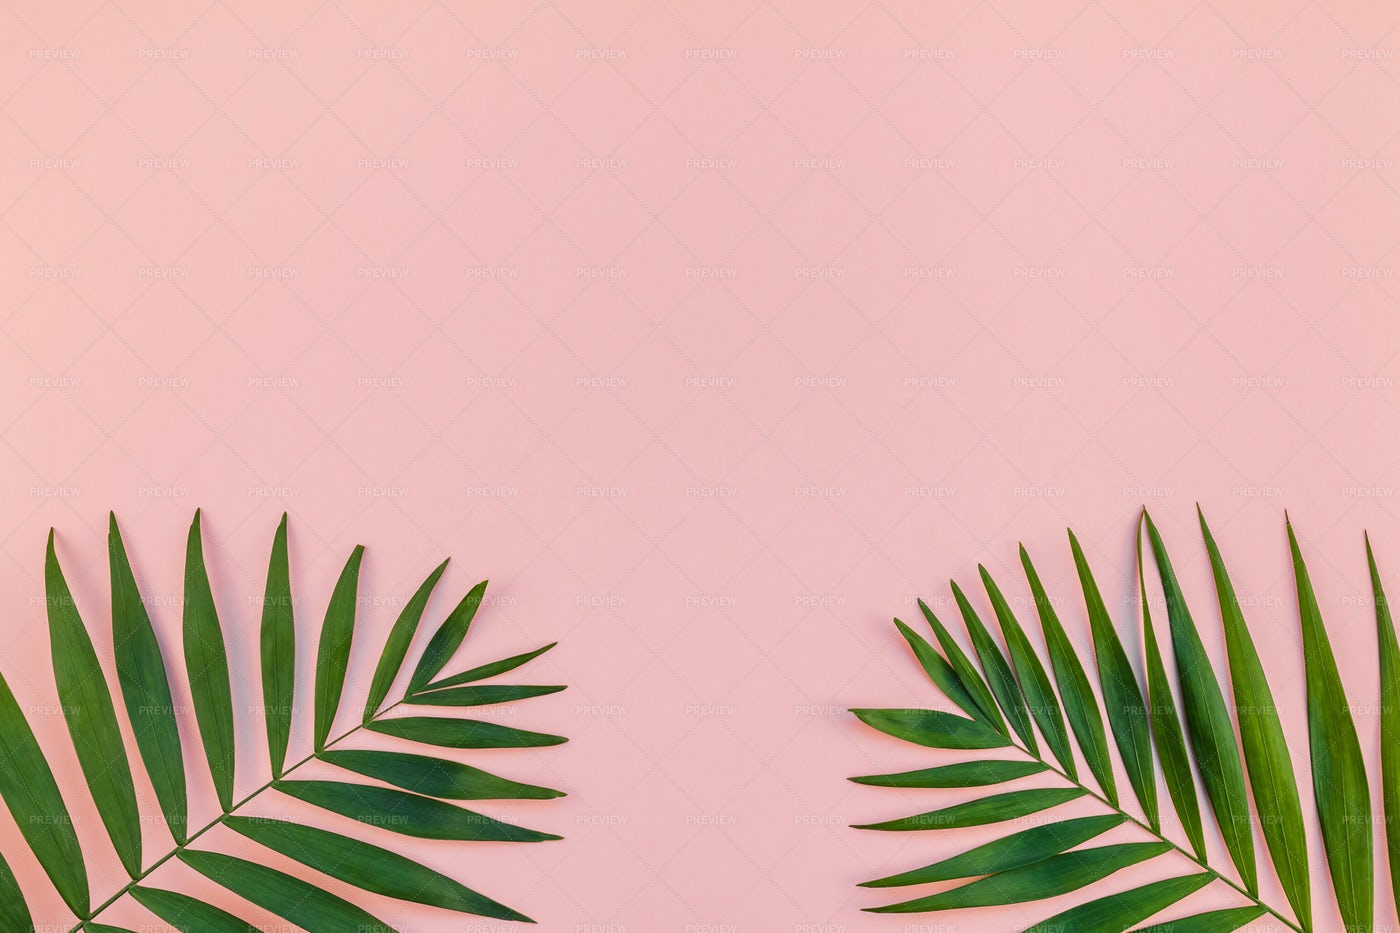 Pink Surface And Leaves: Stock Photos